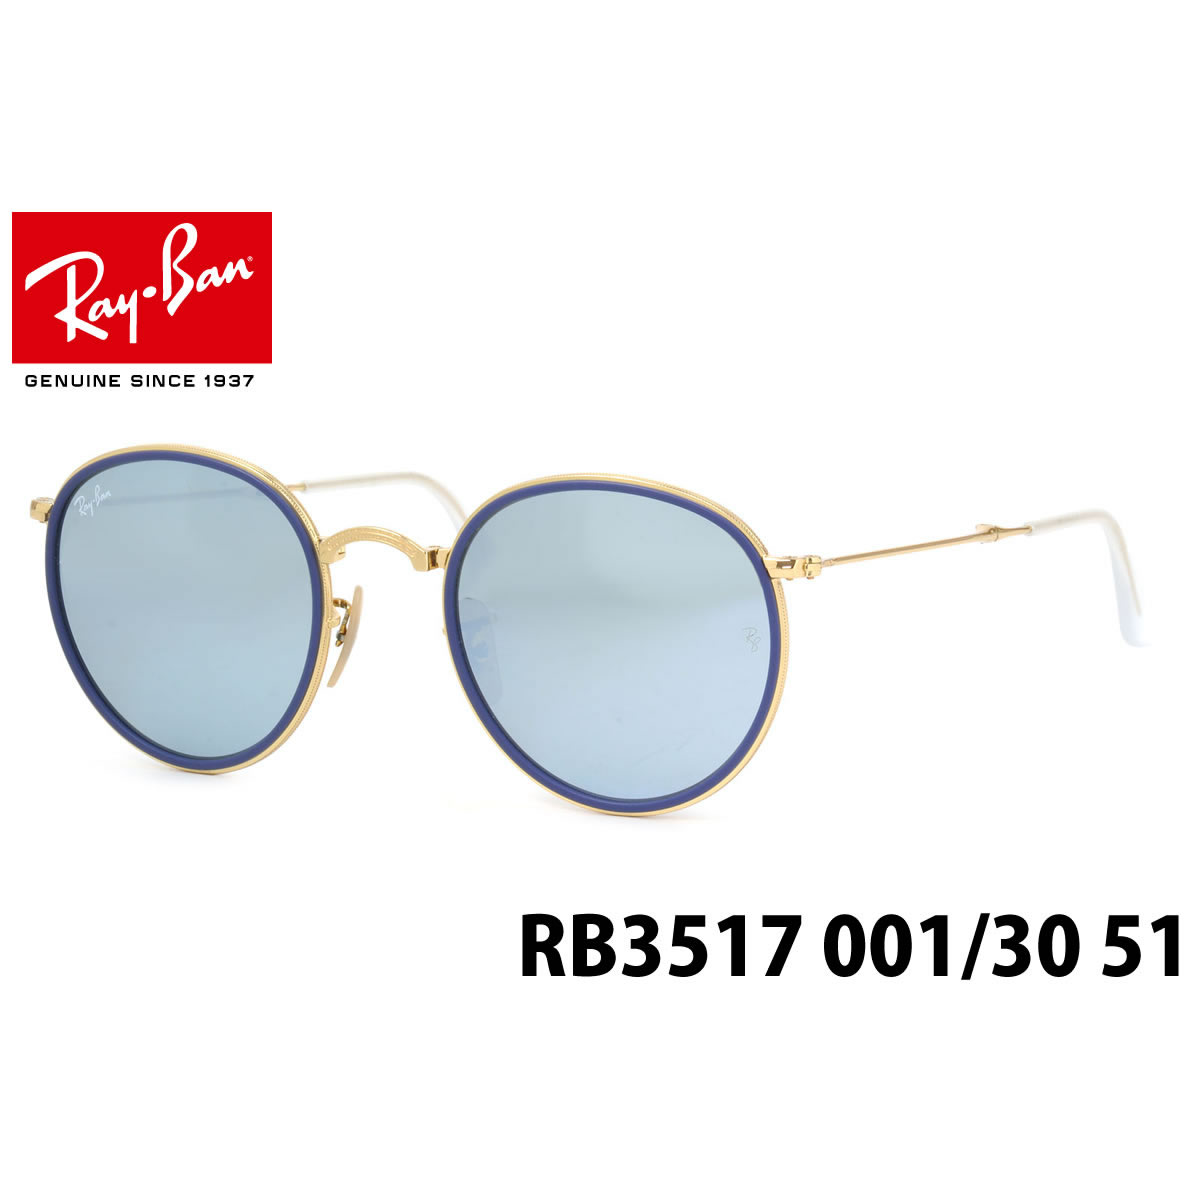 062d0560c In RB3517, a bridge and the front of the round form that drew a curve  create a nostalgic feeling. The front is characterized by the bentwood  ware-style ...